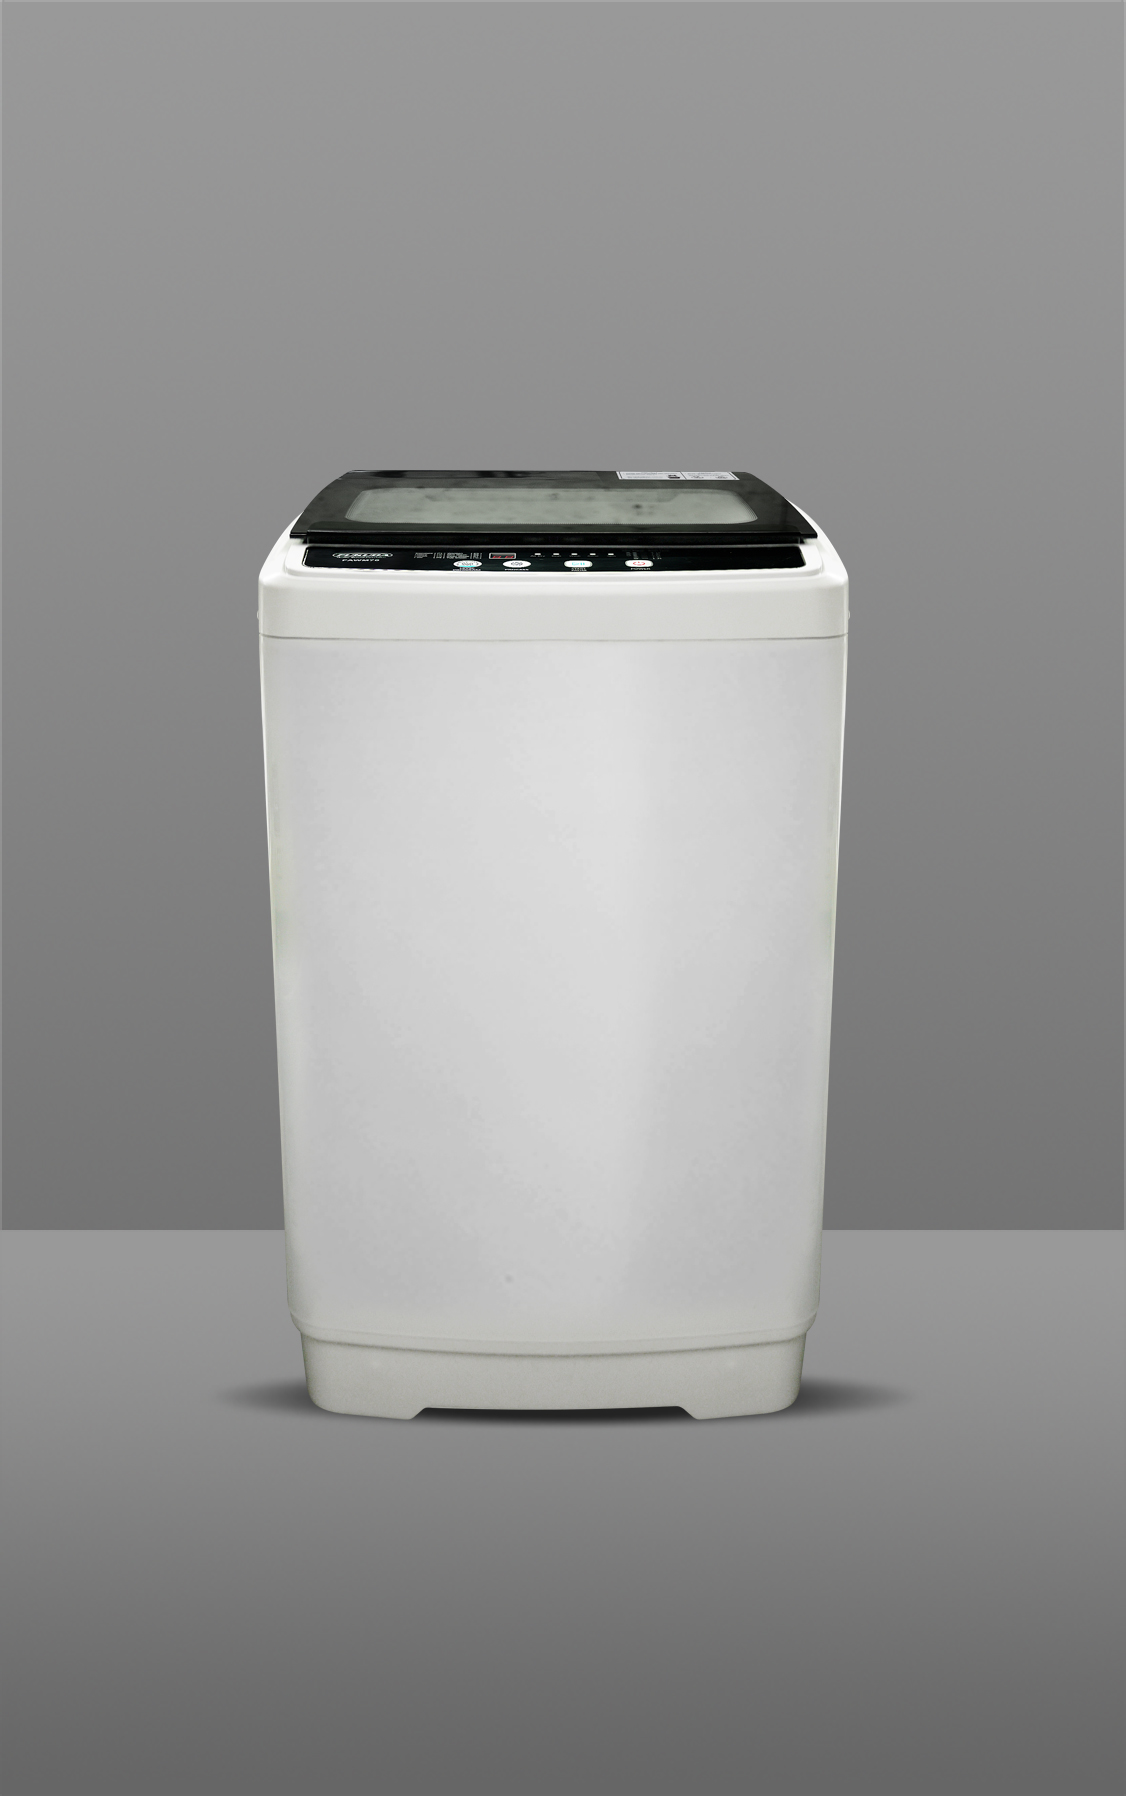 7.0 KG FULLY AUTOMATIC WASHING MACHINE